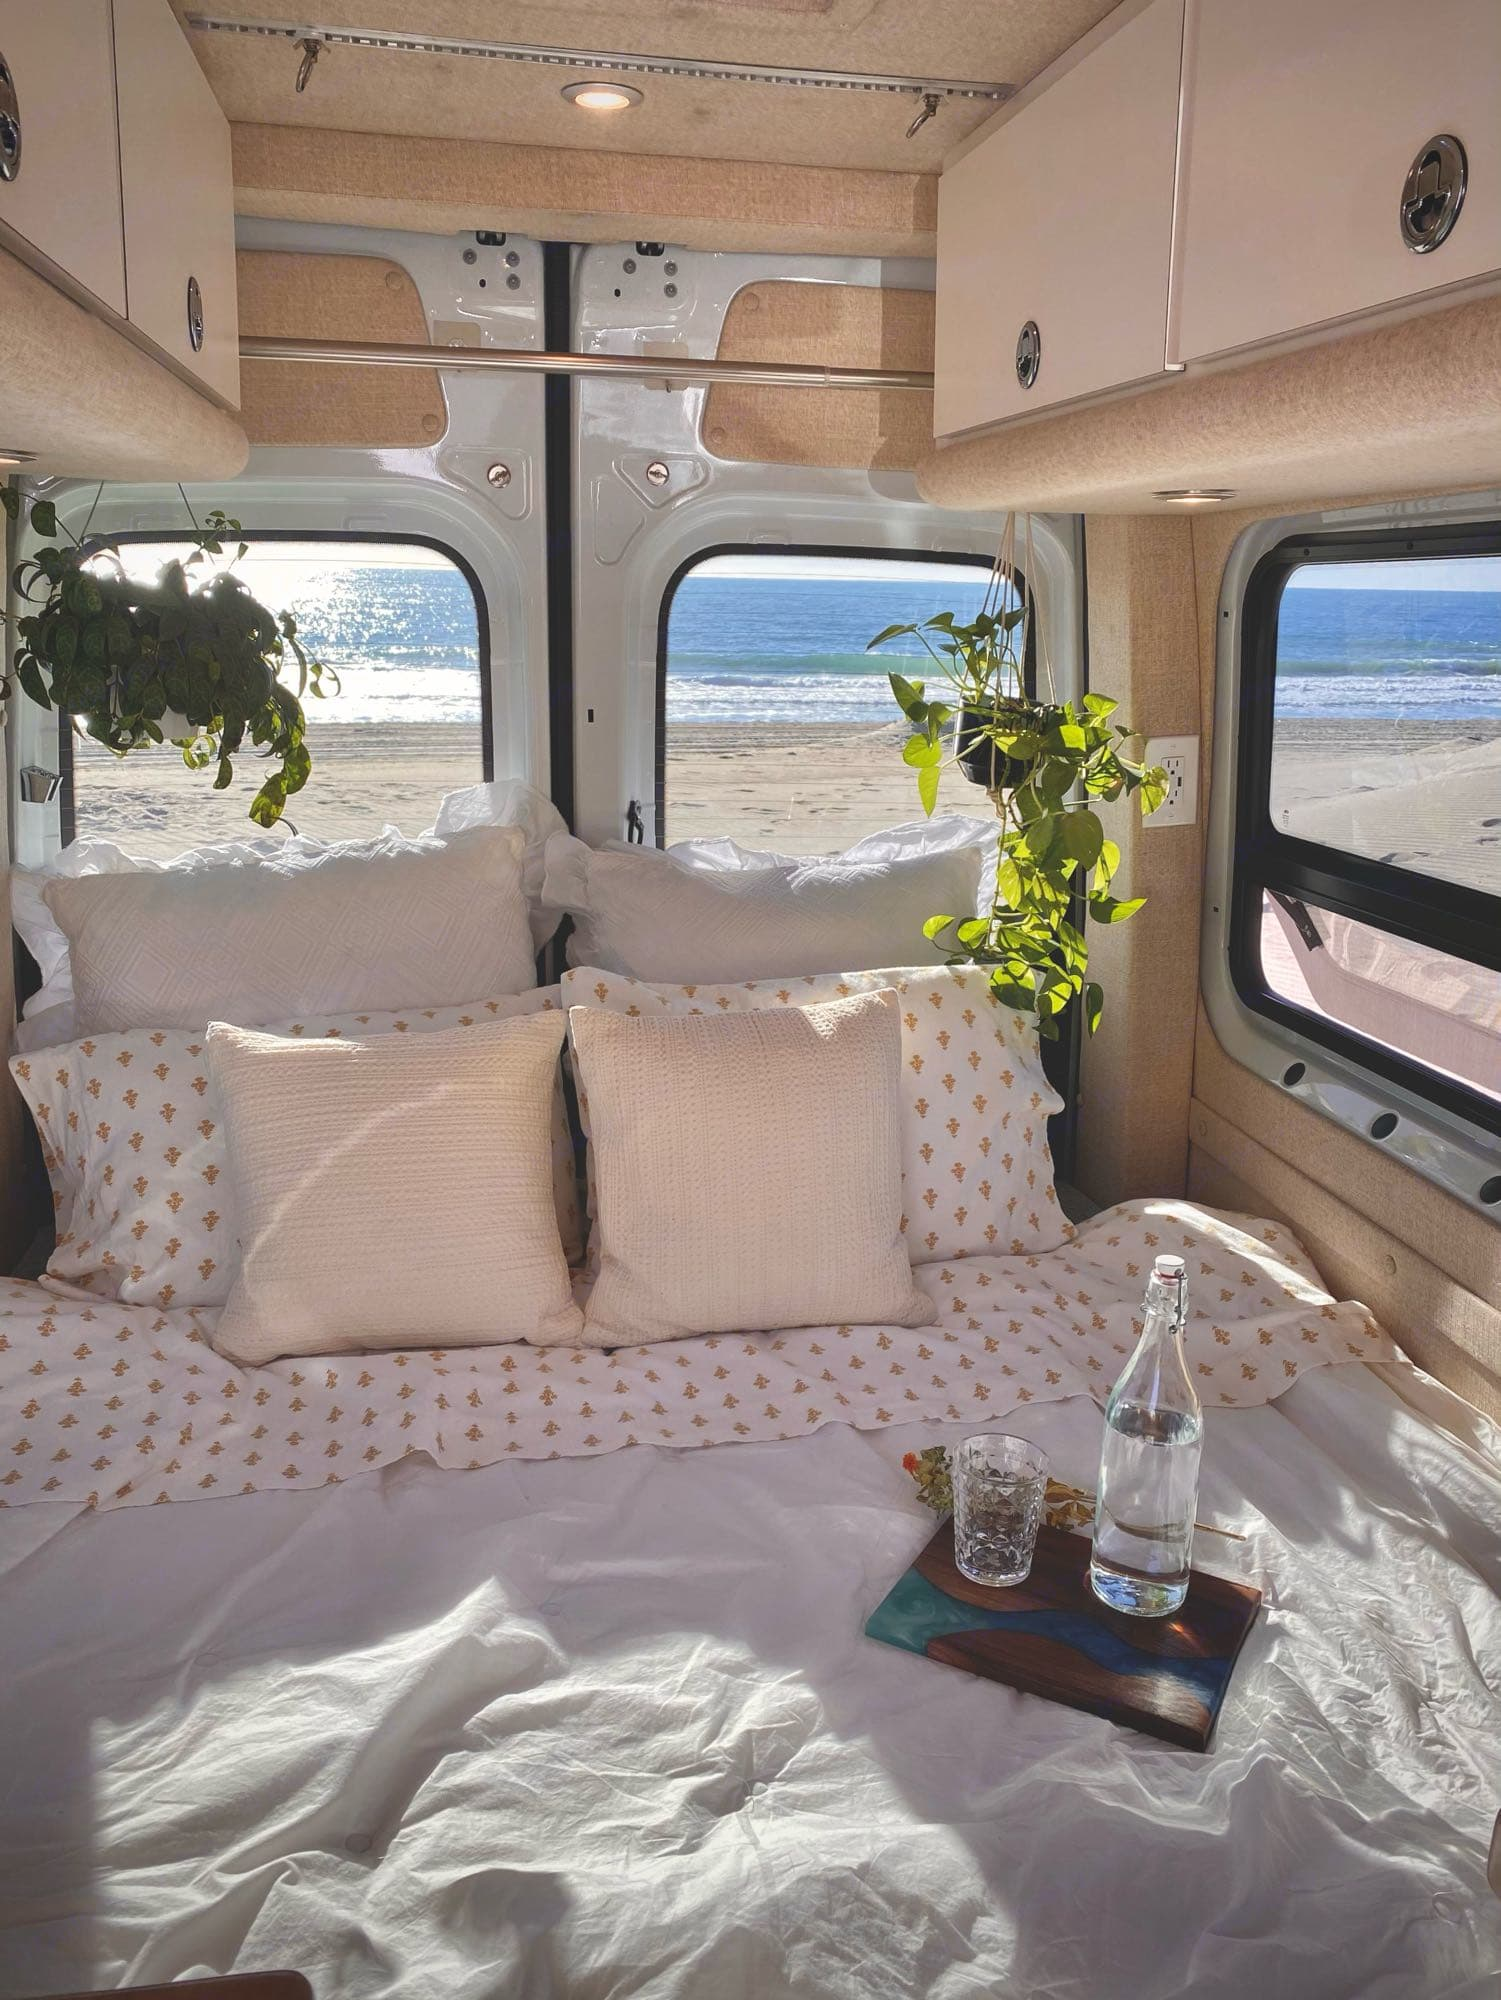 Nothing better than waking up with this view. Mercedes-Benz Sprinter 2019